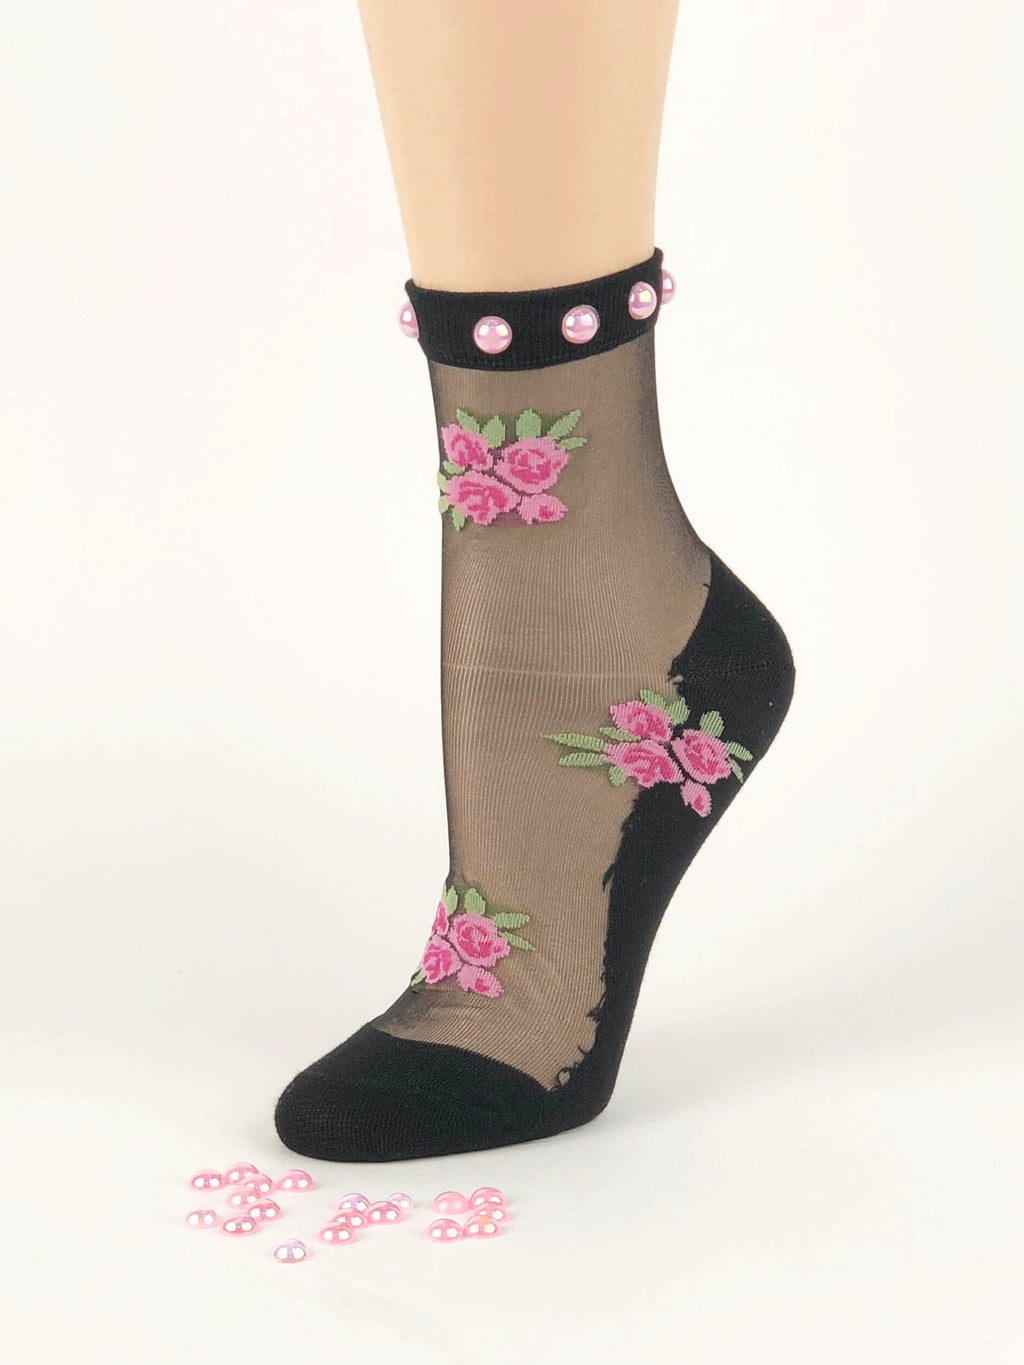 Charming Pink Pearl Flowers Sheer Socks - Global Trendz Fashion®